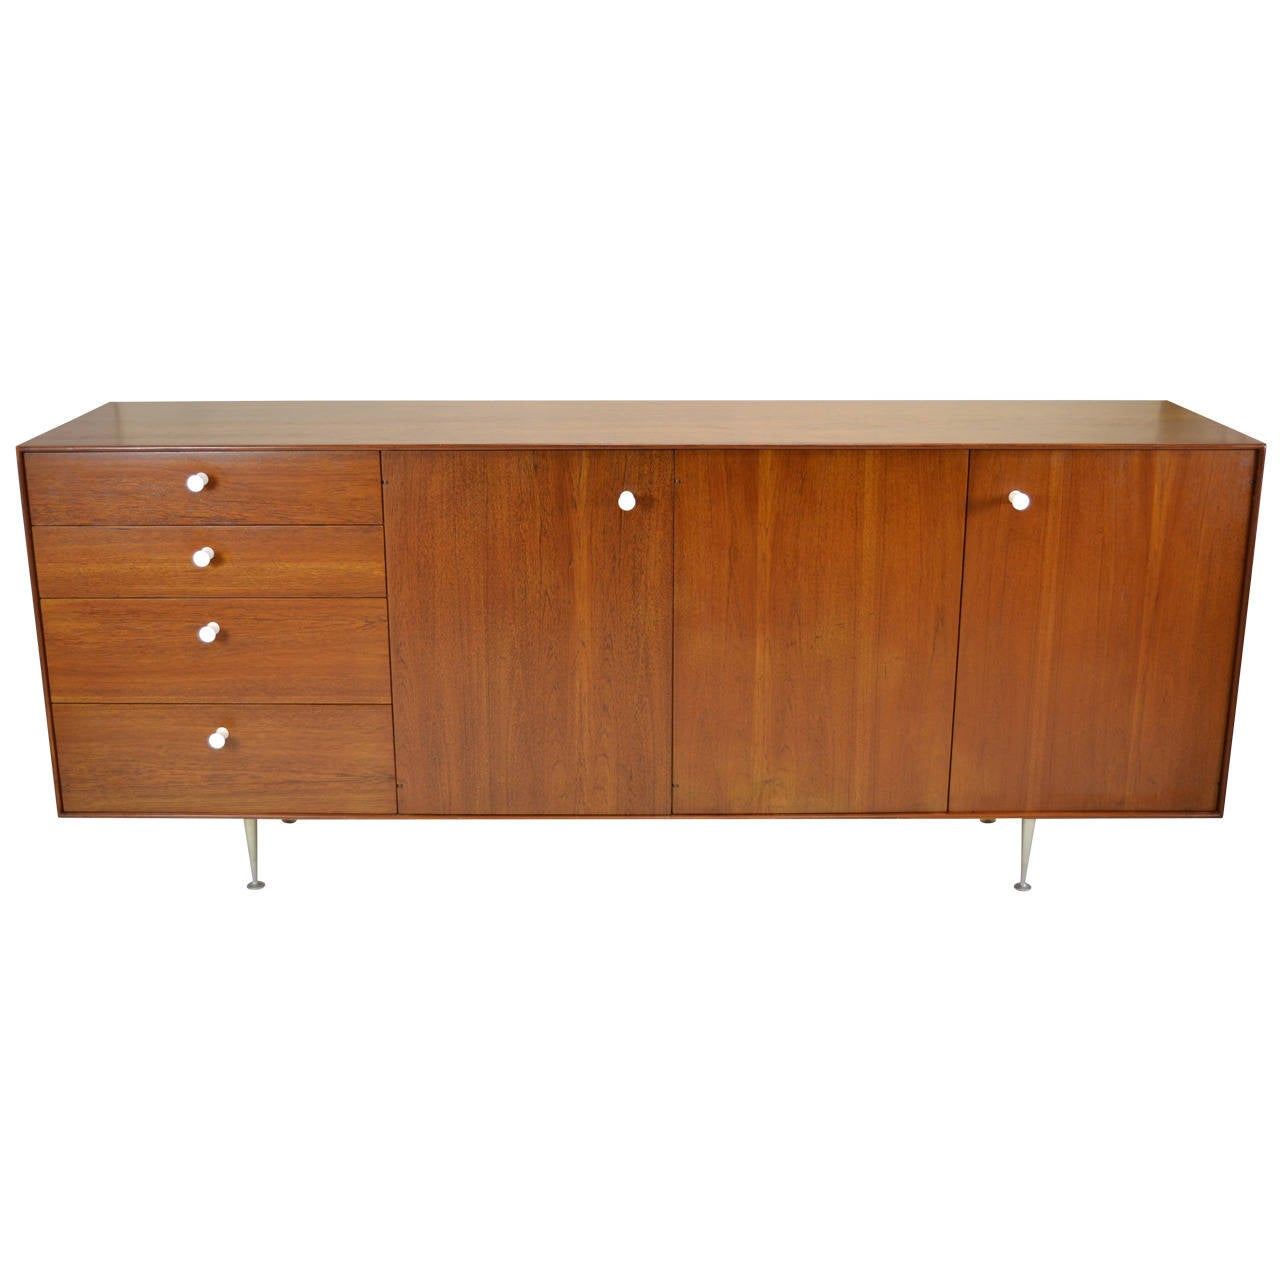 George nelson thin edge sideboard for herman miller circa for Sideboard glasfront